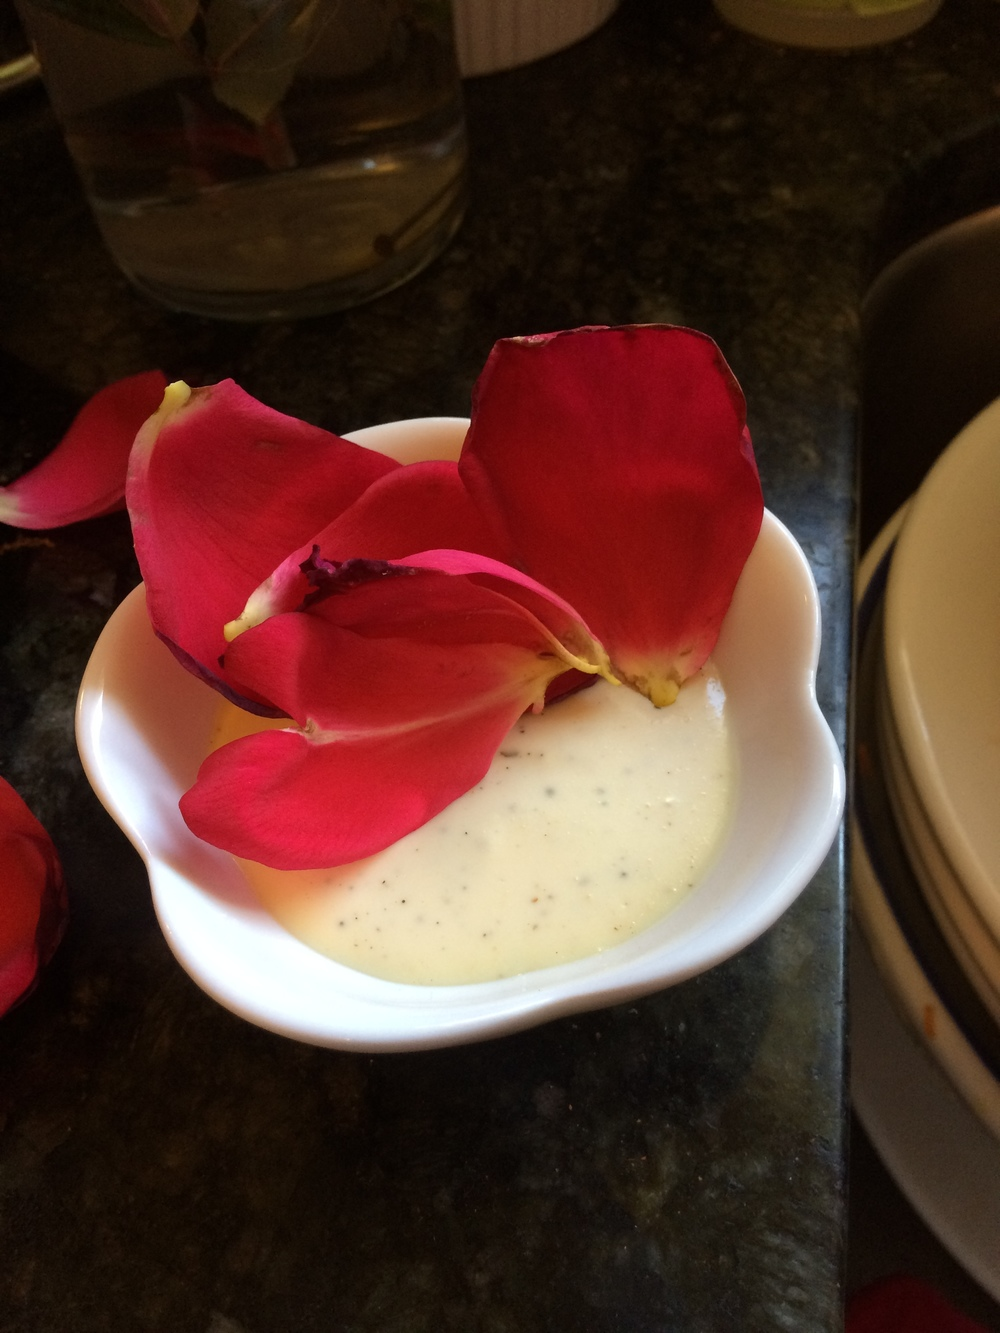 Here's a photo of some rose petals that fell into a cup of ranch dressing. What's even better is that I later found this on my desk, put there as a romantic gesture. Twenty years of marriage, ladies.